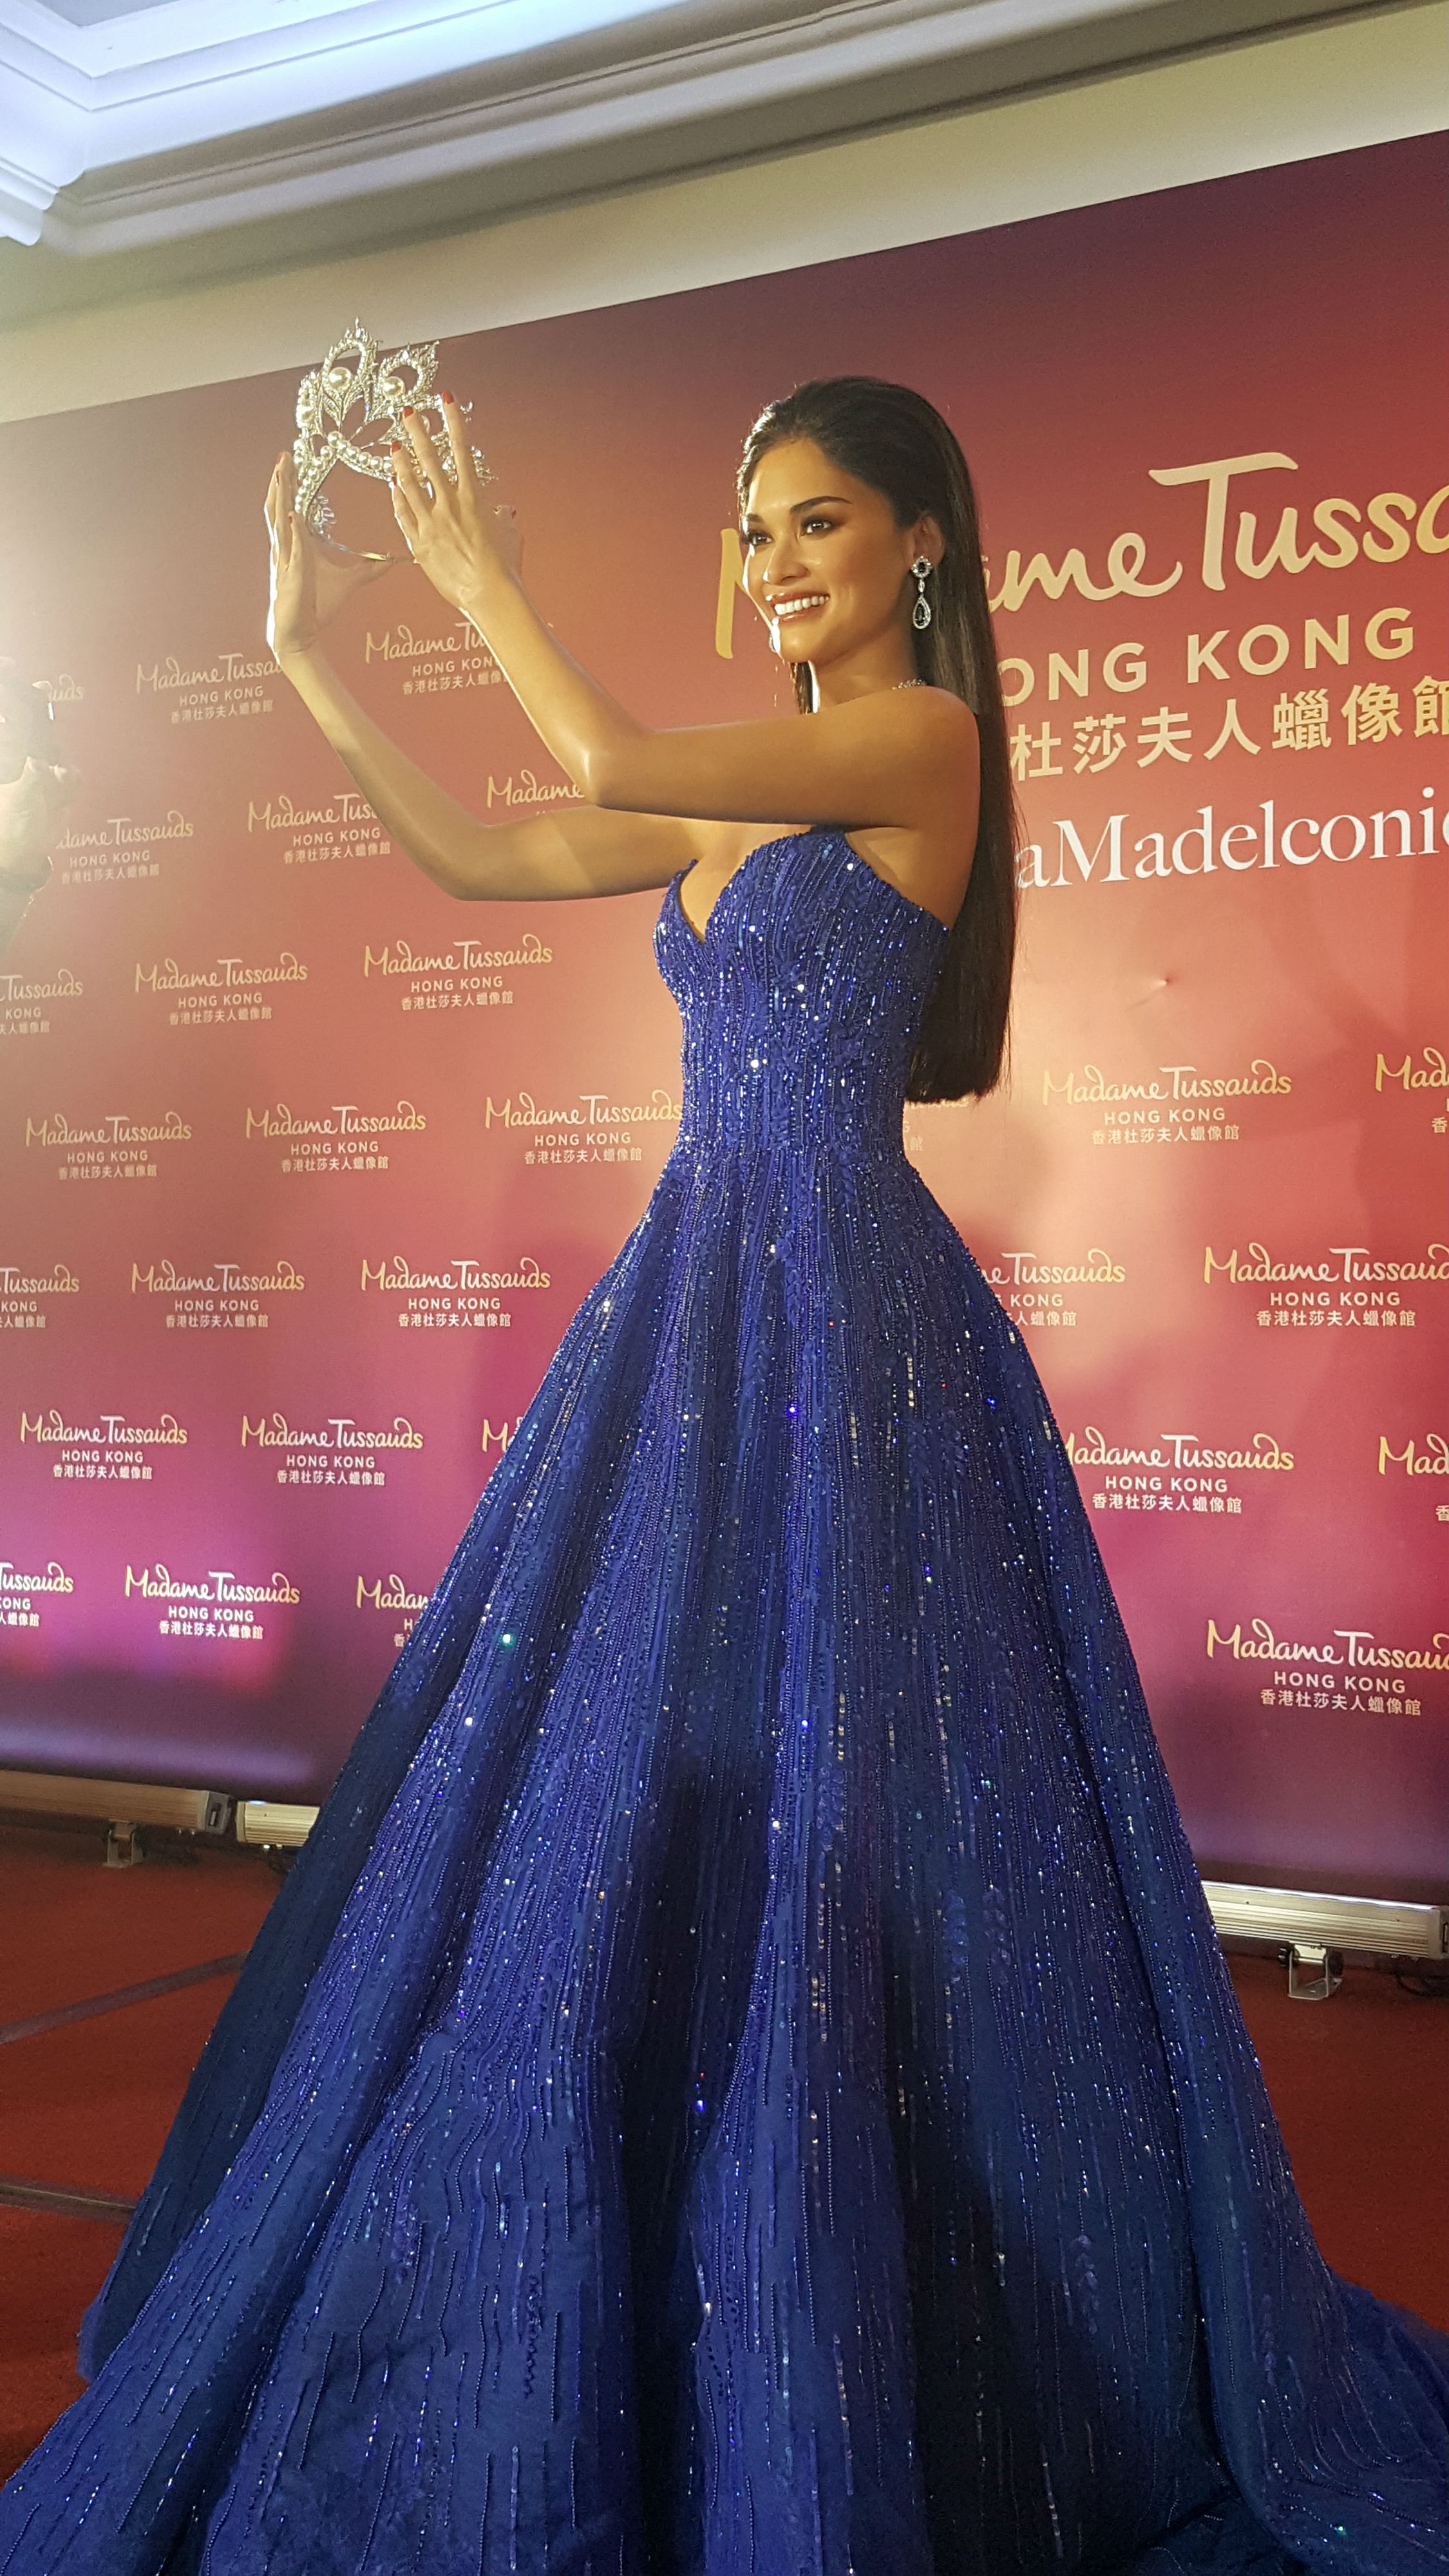 WAX FIGURE. The wax figure of Pia Wurtzbach holding the Mikimoto crown which will be displayed in Madame Tussauds Hong Kong. Photo by Alexa Villano/Rappler